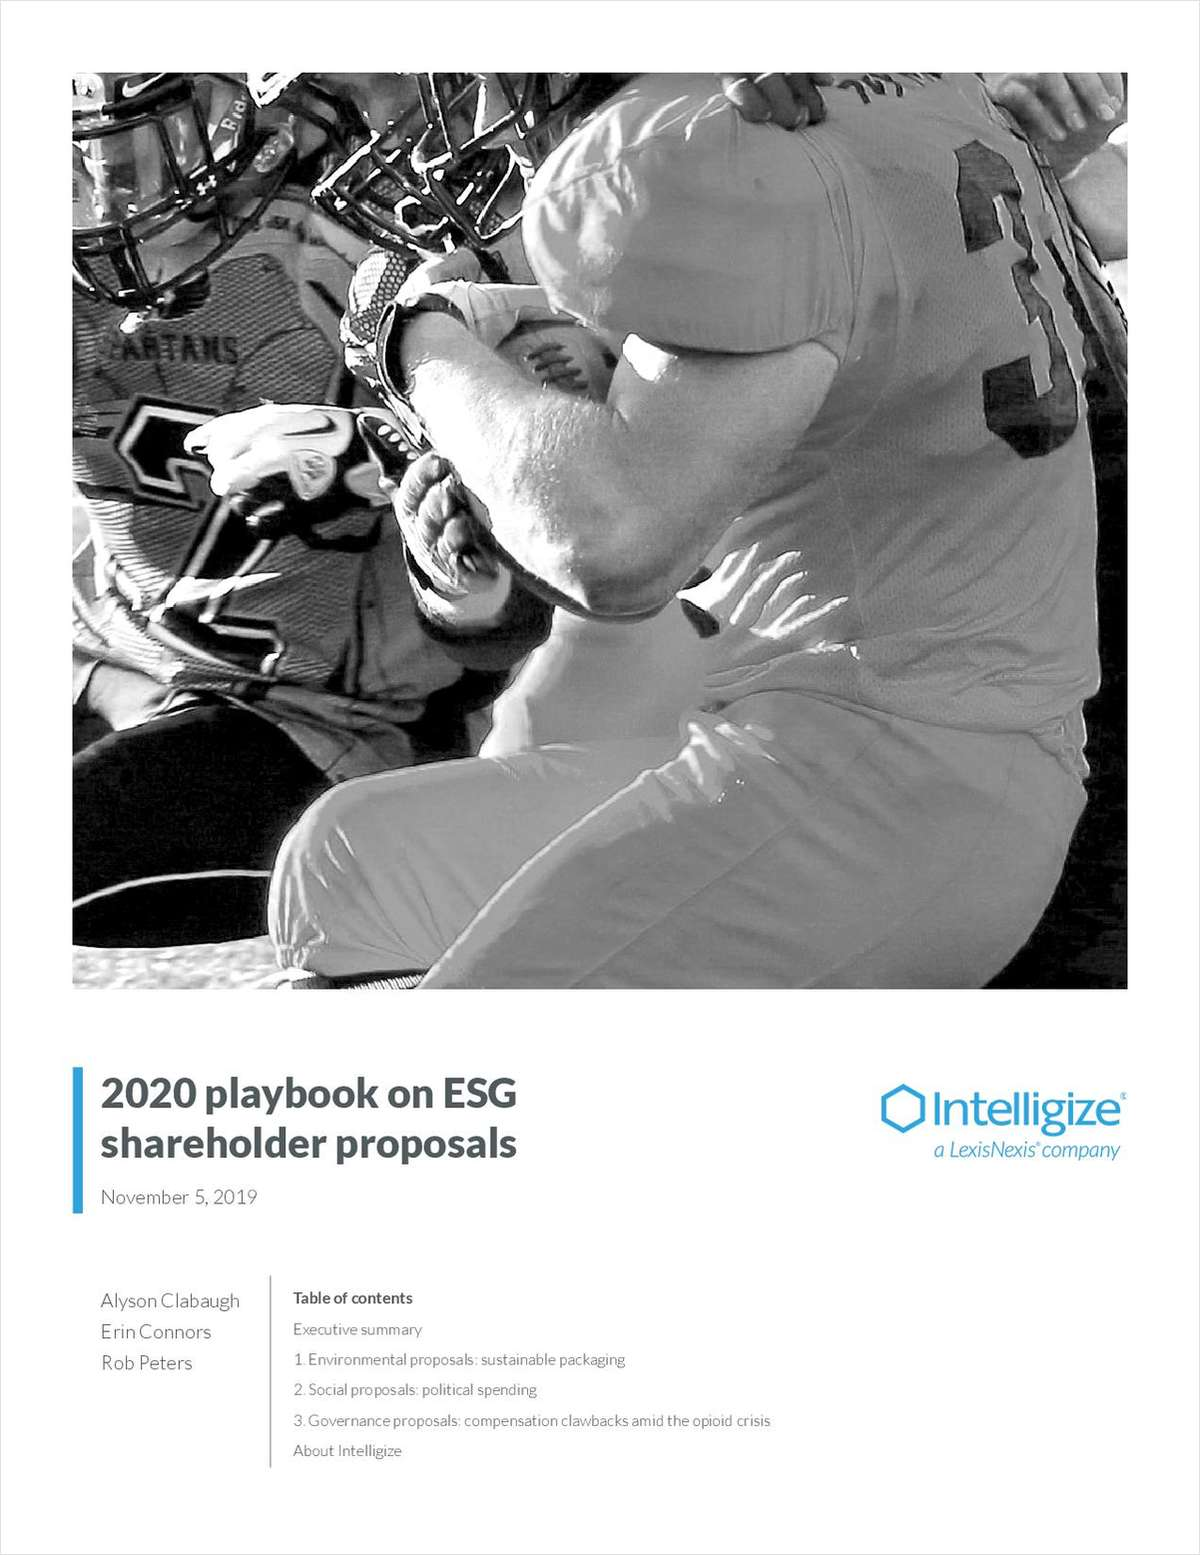 2020 Playbook on ESG Shareholder Proposals: Evaluating last year's proxy vote results